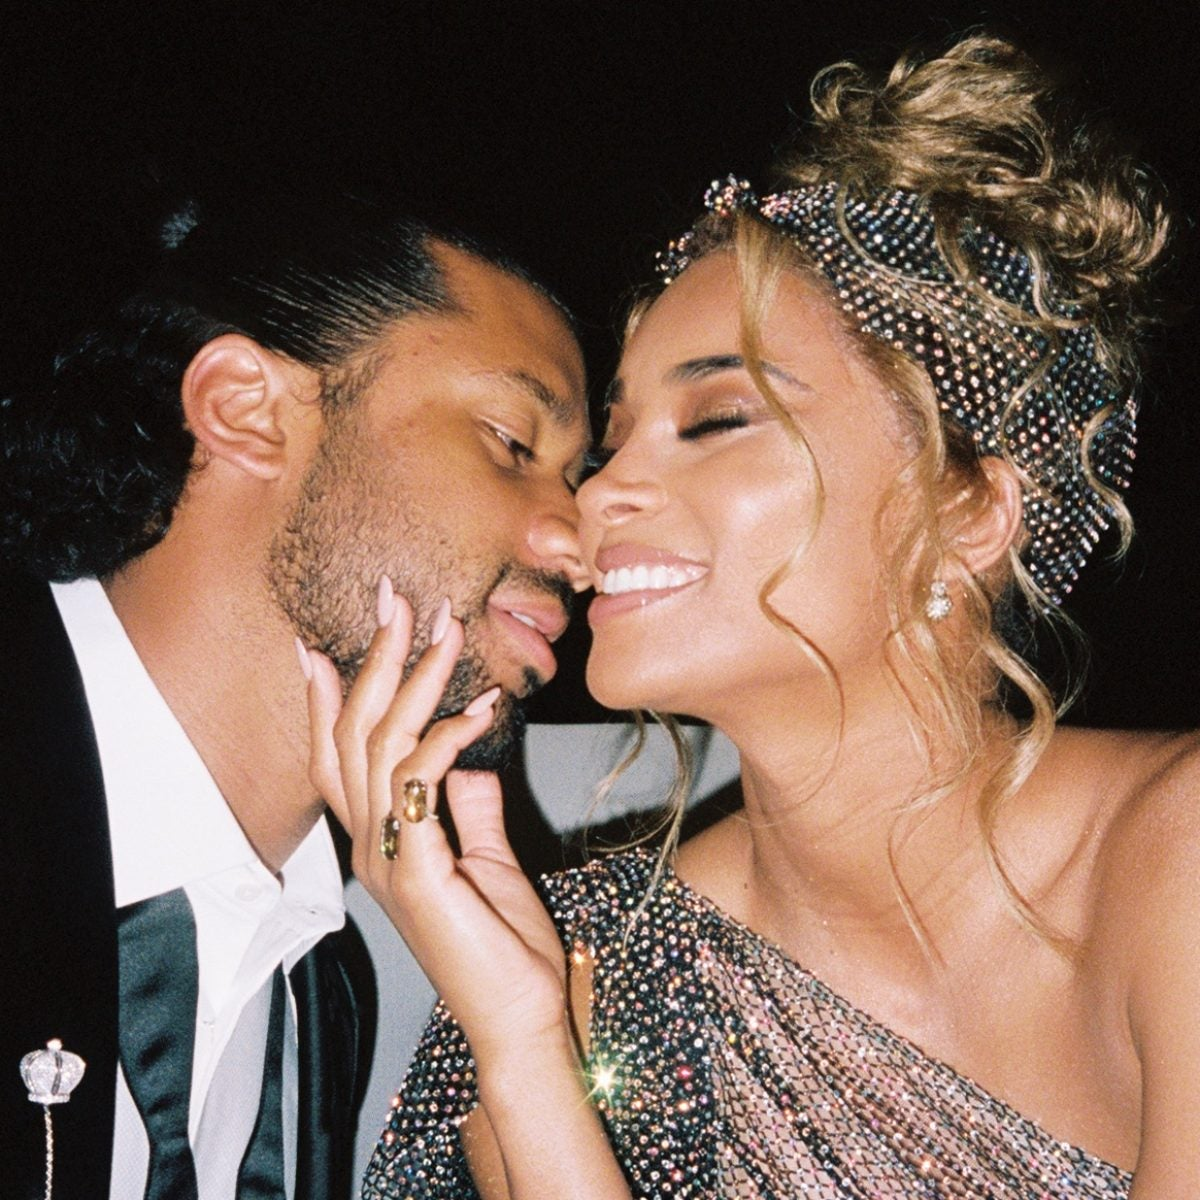 Ciara And Russell Wilson's New His And Hers Fragrance Deserves To Be On Your Christmas List